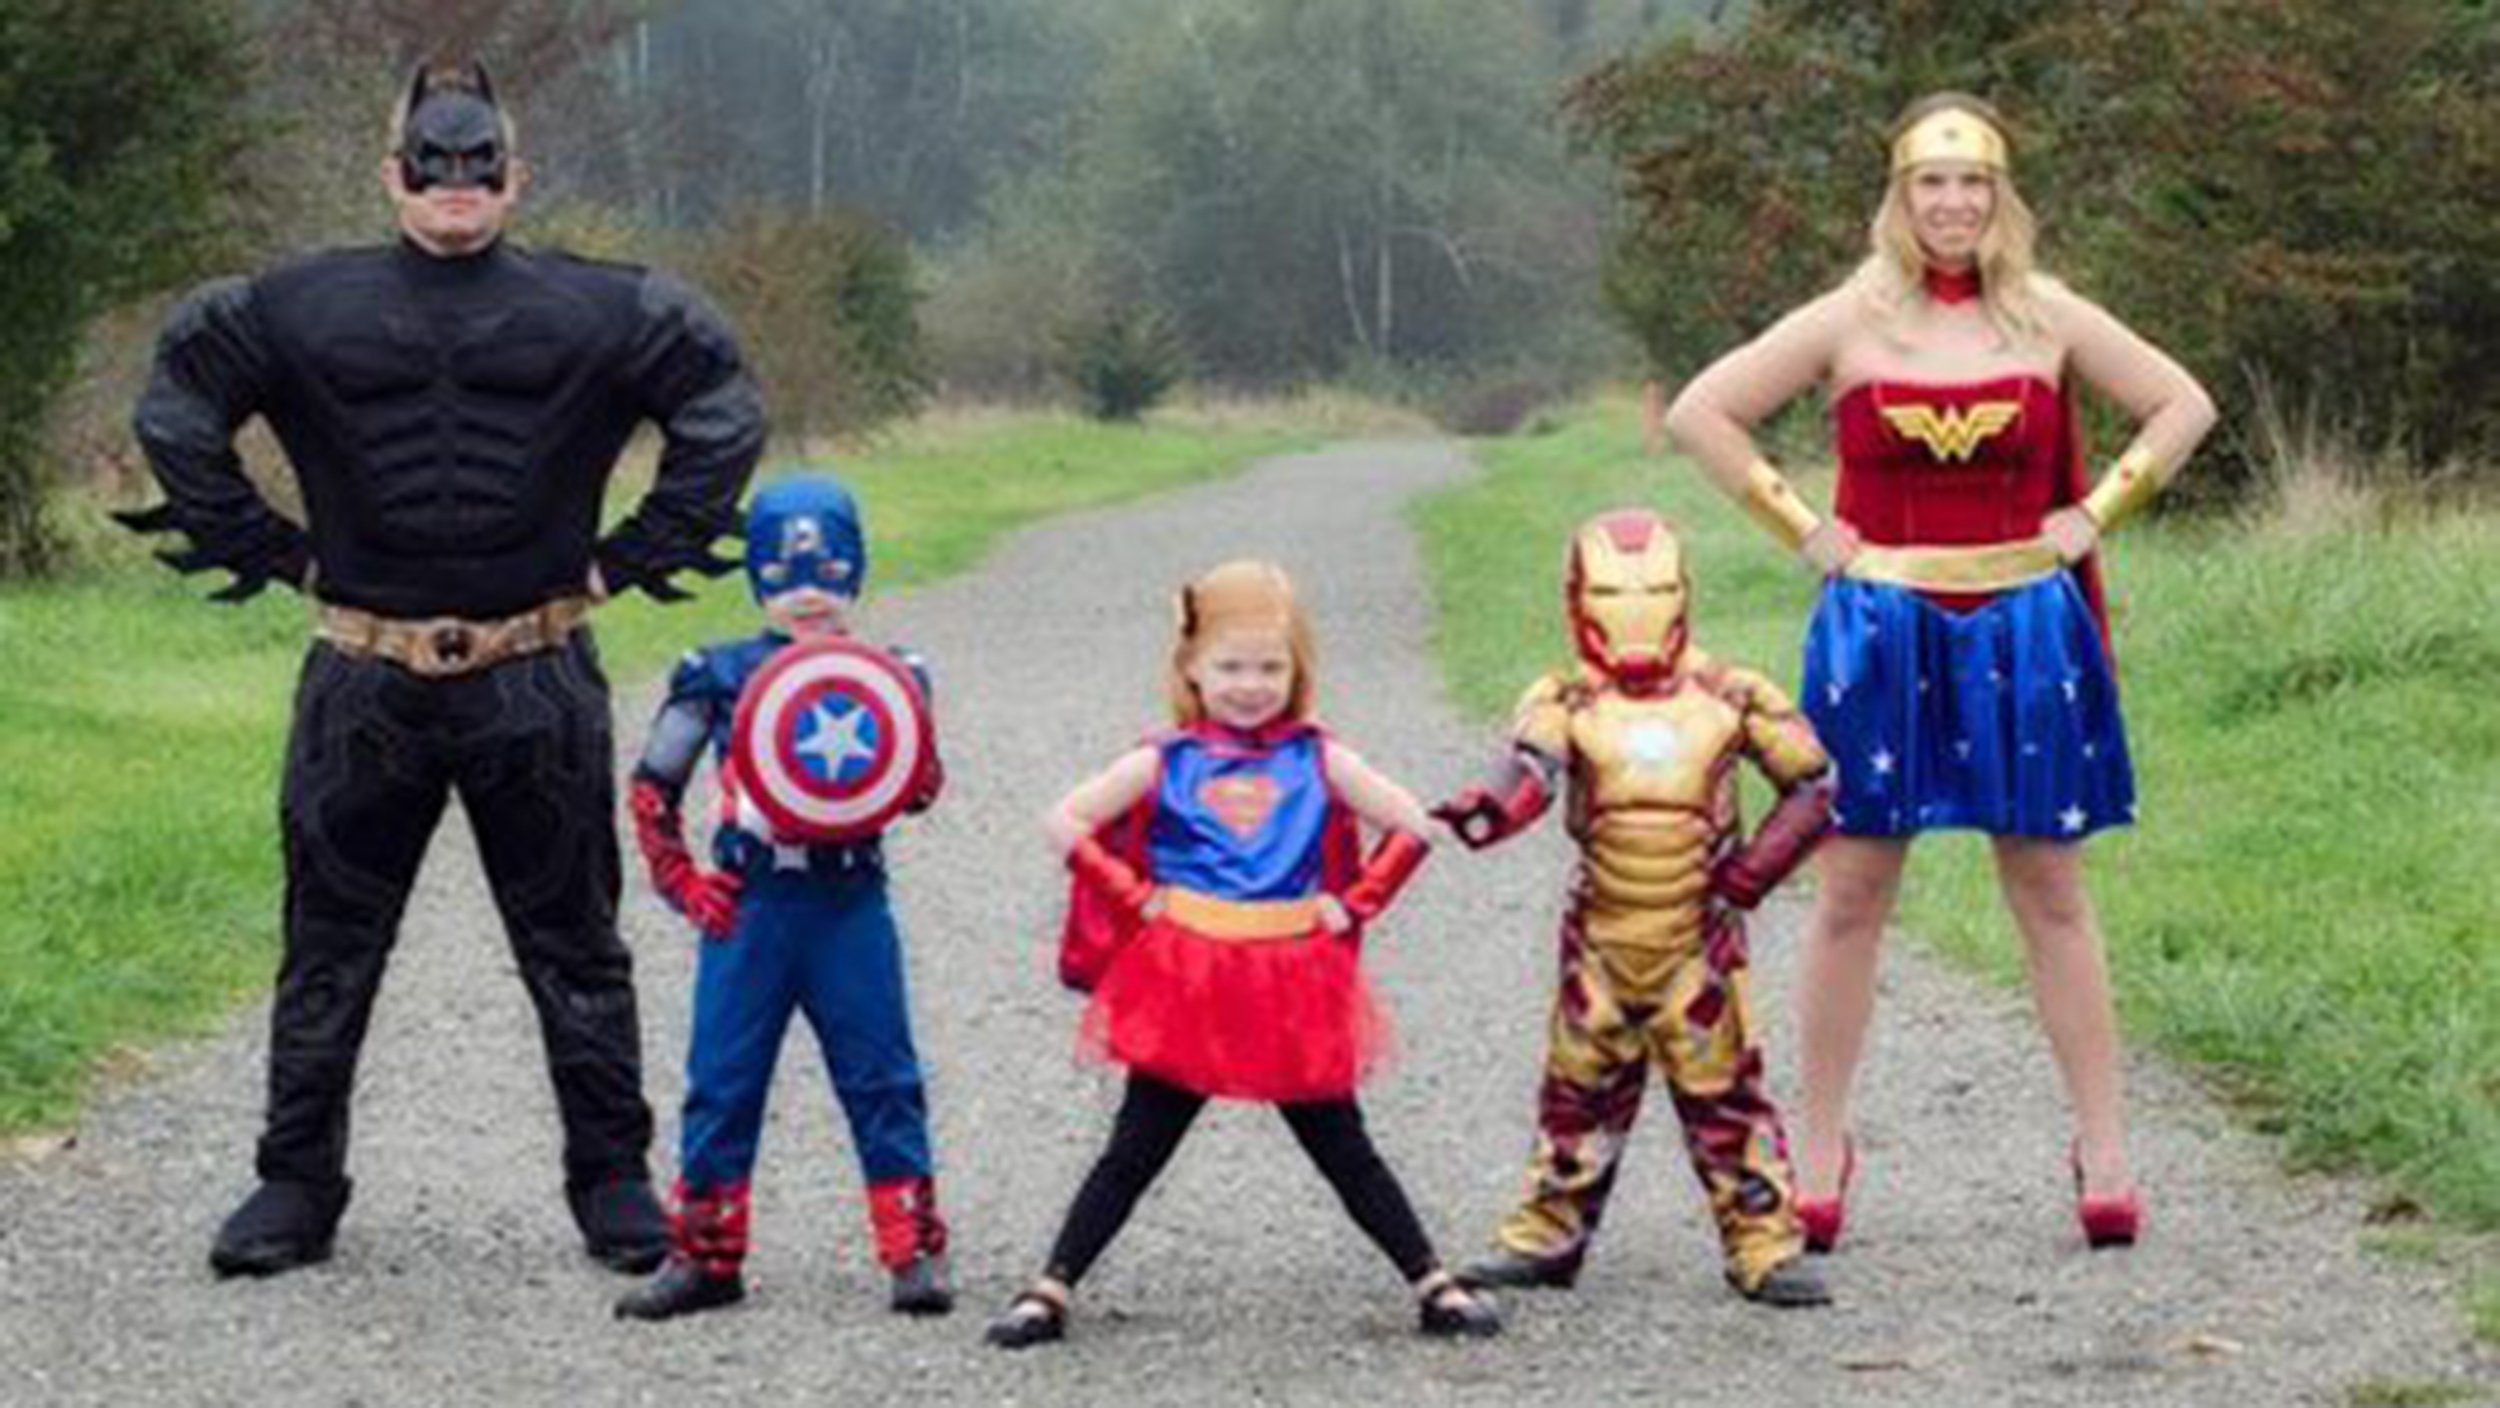 10 Fantastic Family Costume Ideas For Three 19 of the cutest family theme costumes for halloween 5 2020